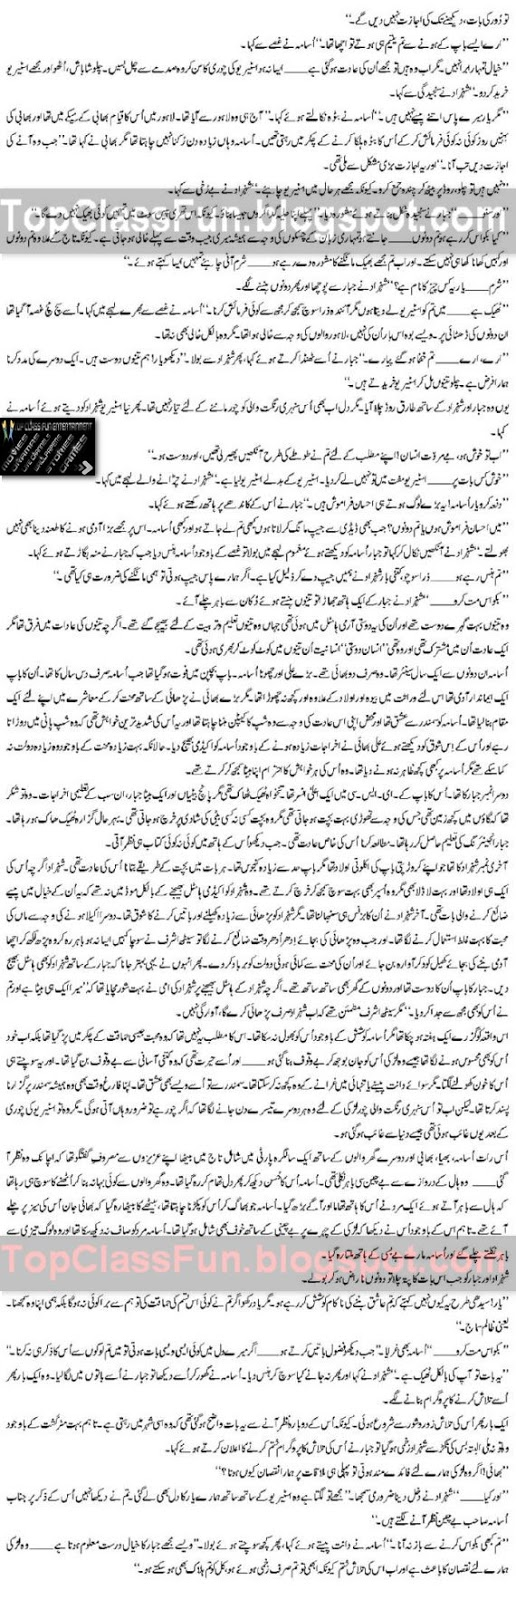 Romantic Urdu Novel - MOHABBAT &#8211; By Shahina Chanda Mehtab Page 3